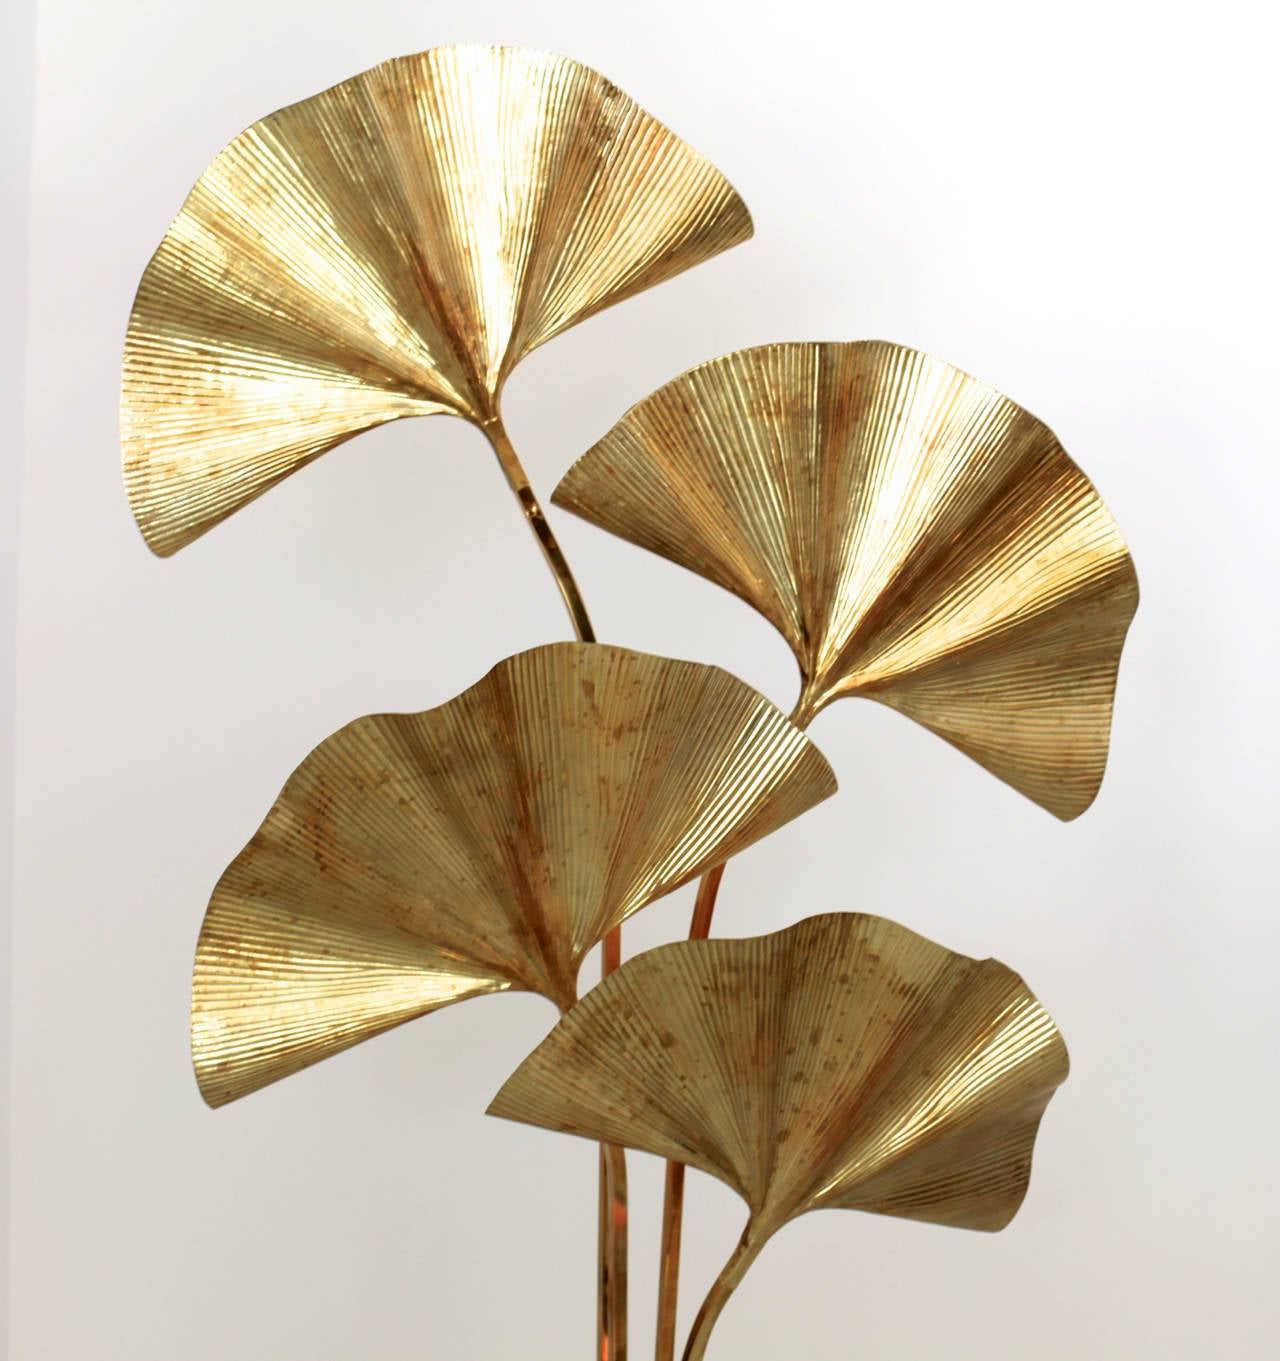 Wonderful, exceptional huge four ginkgo leaves floor lamp by the Italian designer Tommaso Barbi. The lamp is made of brass and the reflection of the light on the brass brings a cozy atmosphere in every room. The lamp is an icon of the 1970s design